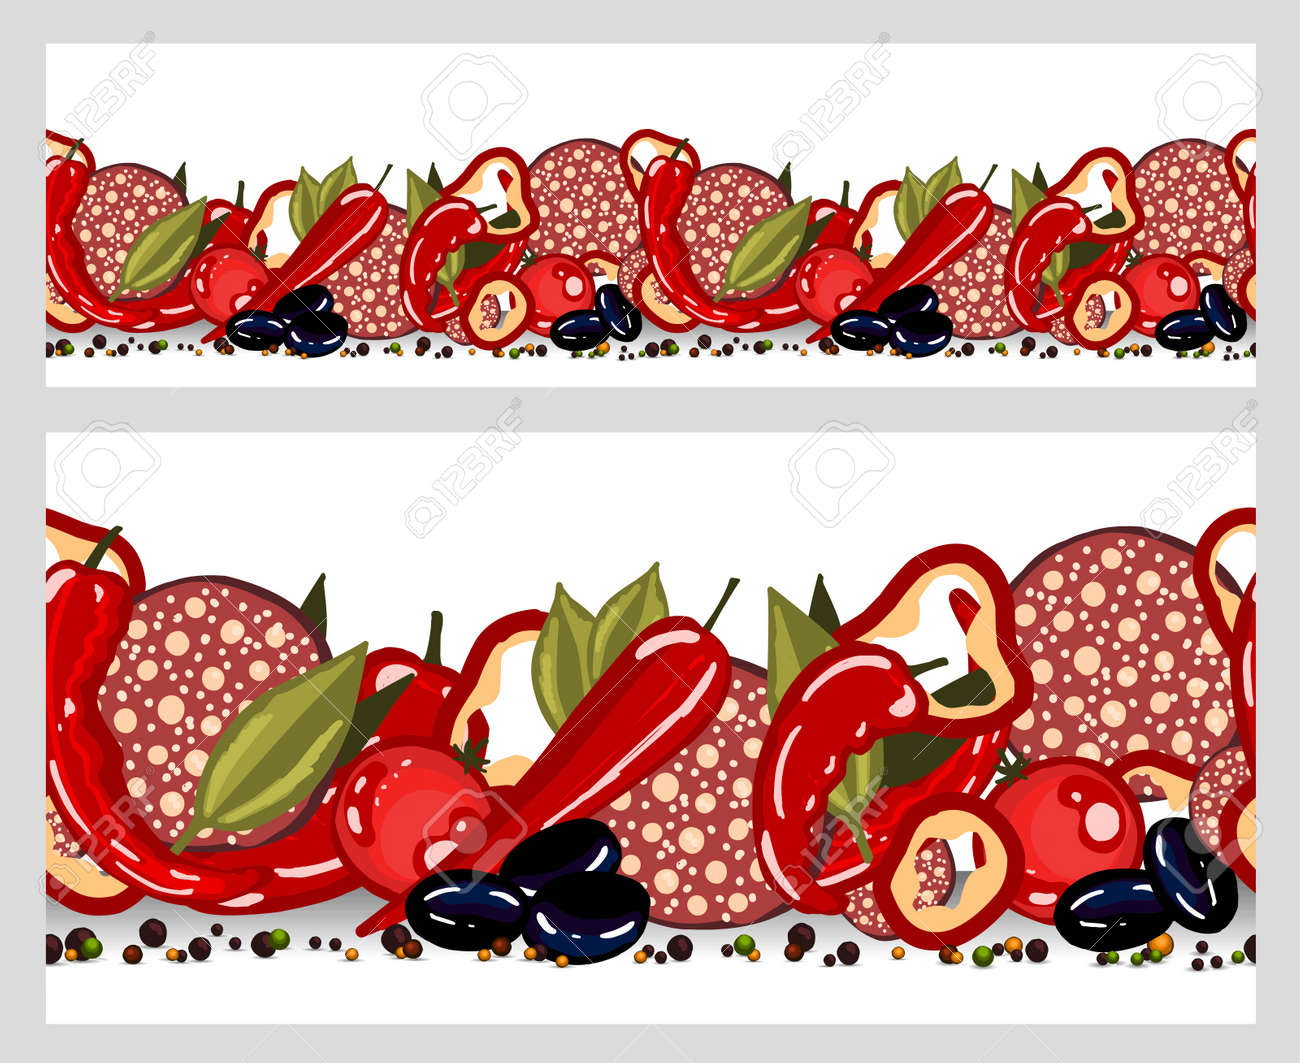 Kitchen textile design. Cooking food border seamless. Pizza, salami, peppers and olives with olives. Italian pizza. - 168914904